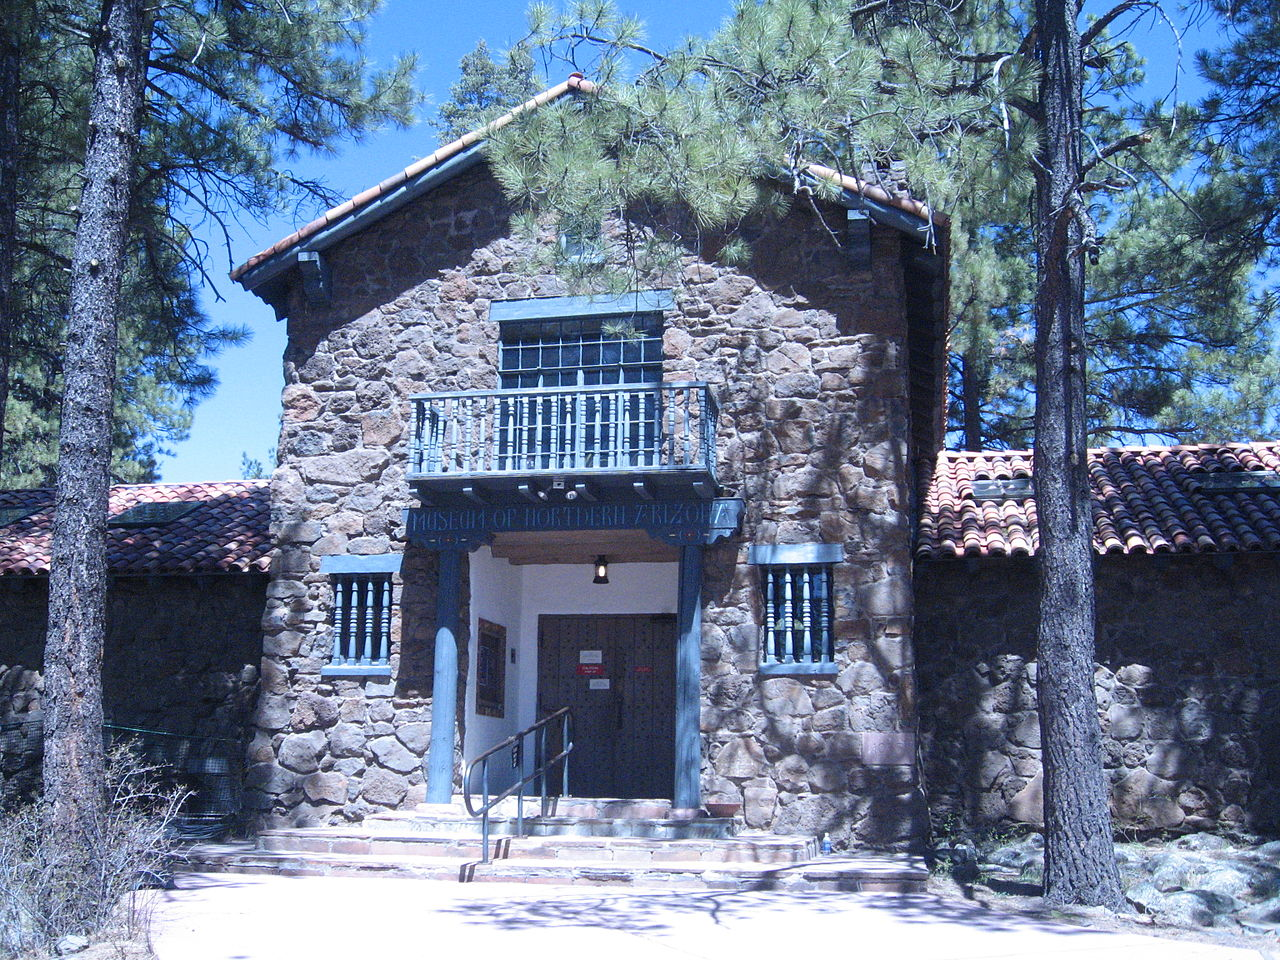 Attraction Place To Visit In Flagstaff-Northern Arizona Museum